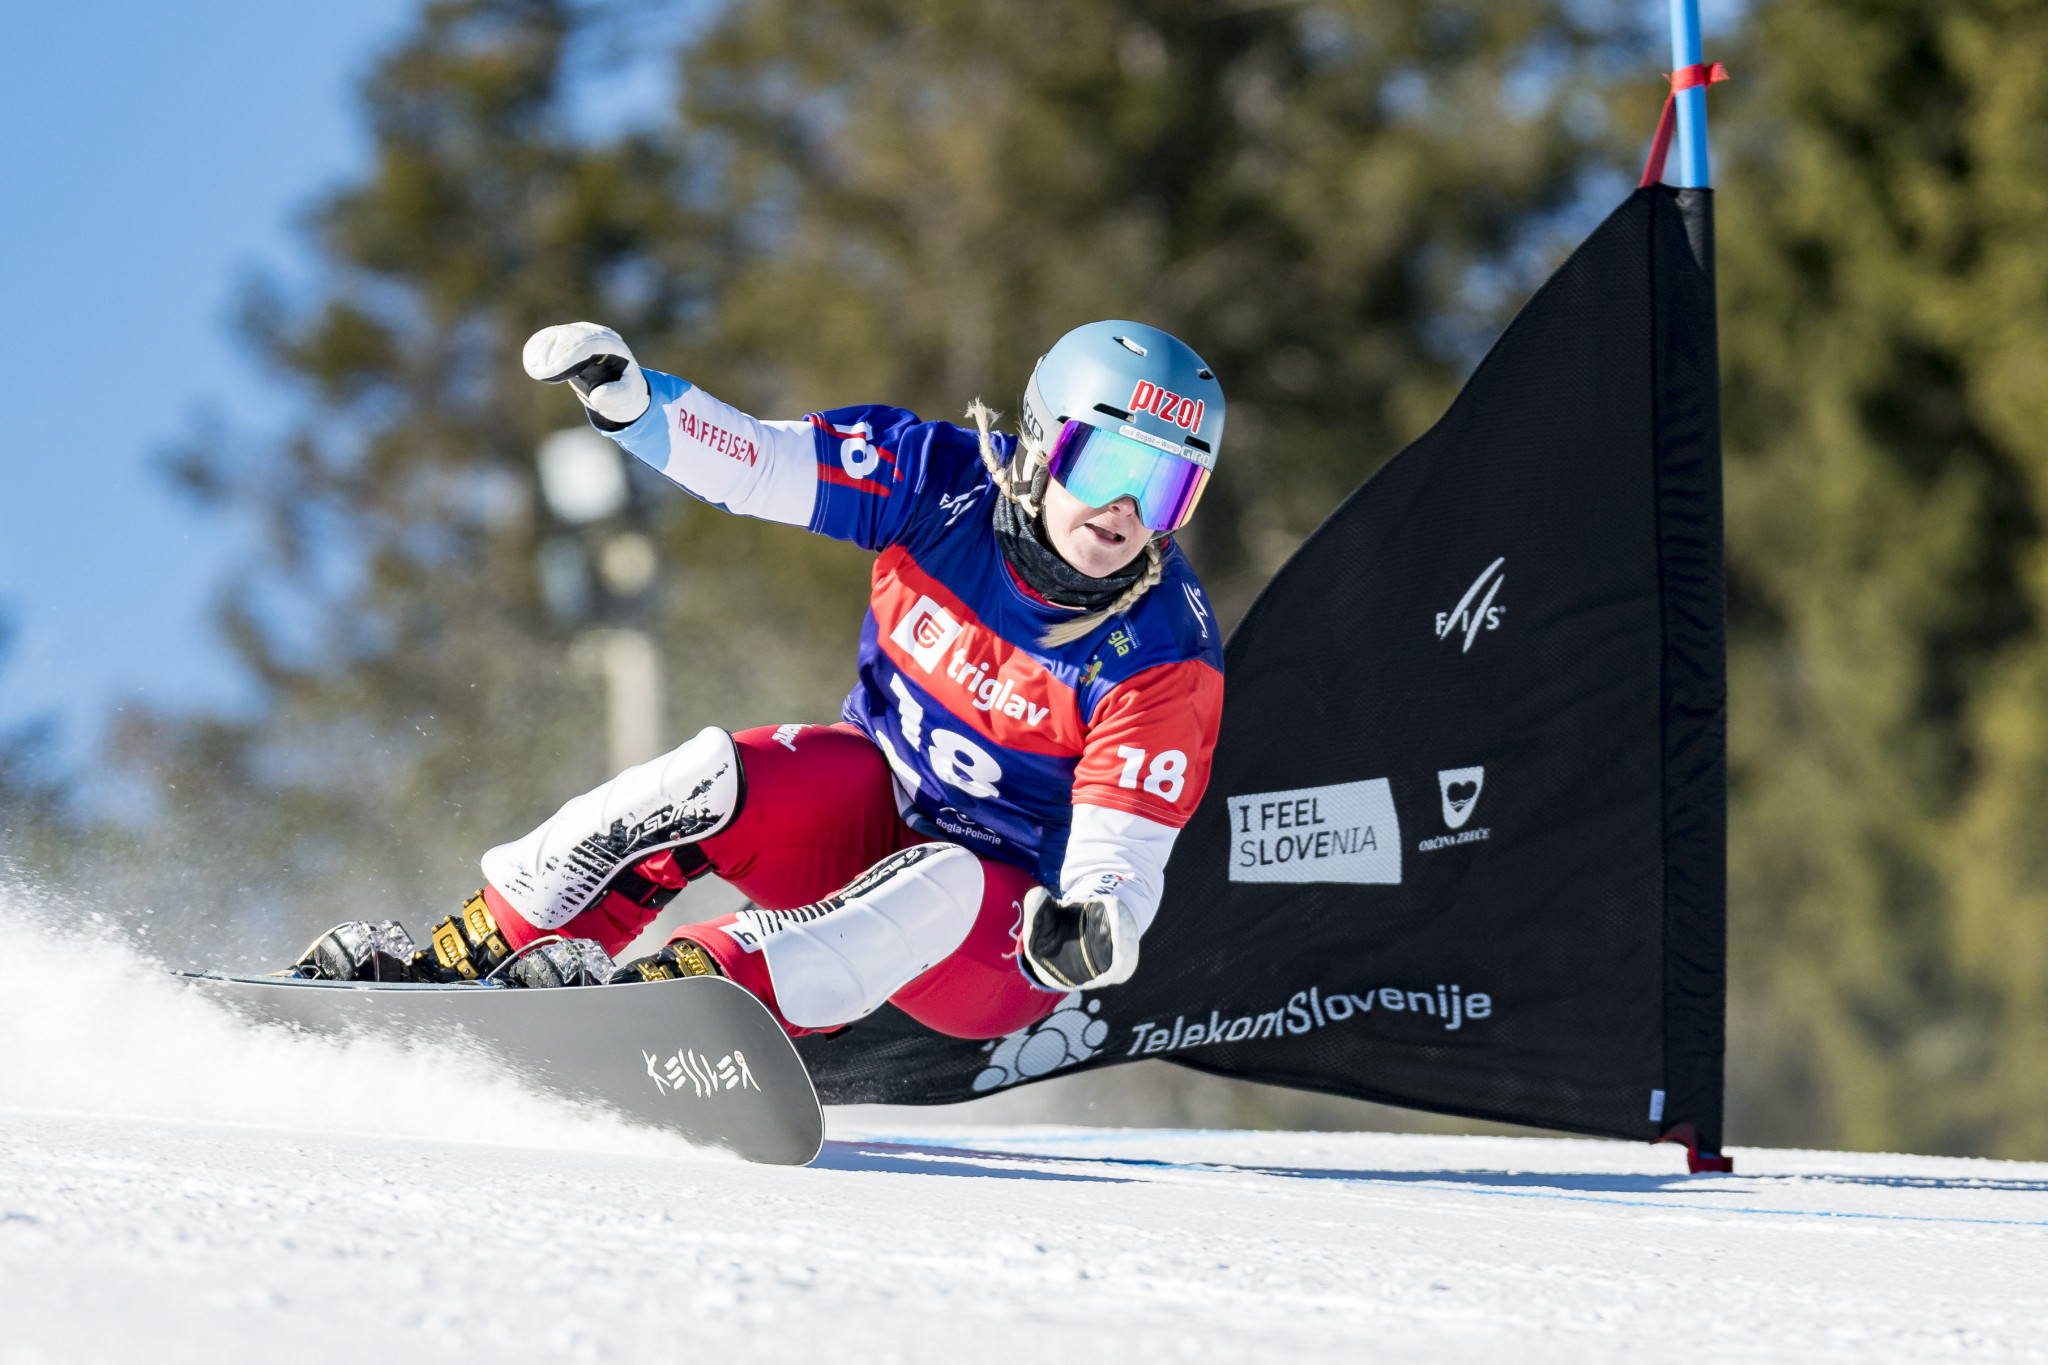 Swiss Snowboard selects 13 athletes on national team for 2021-2022 season